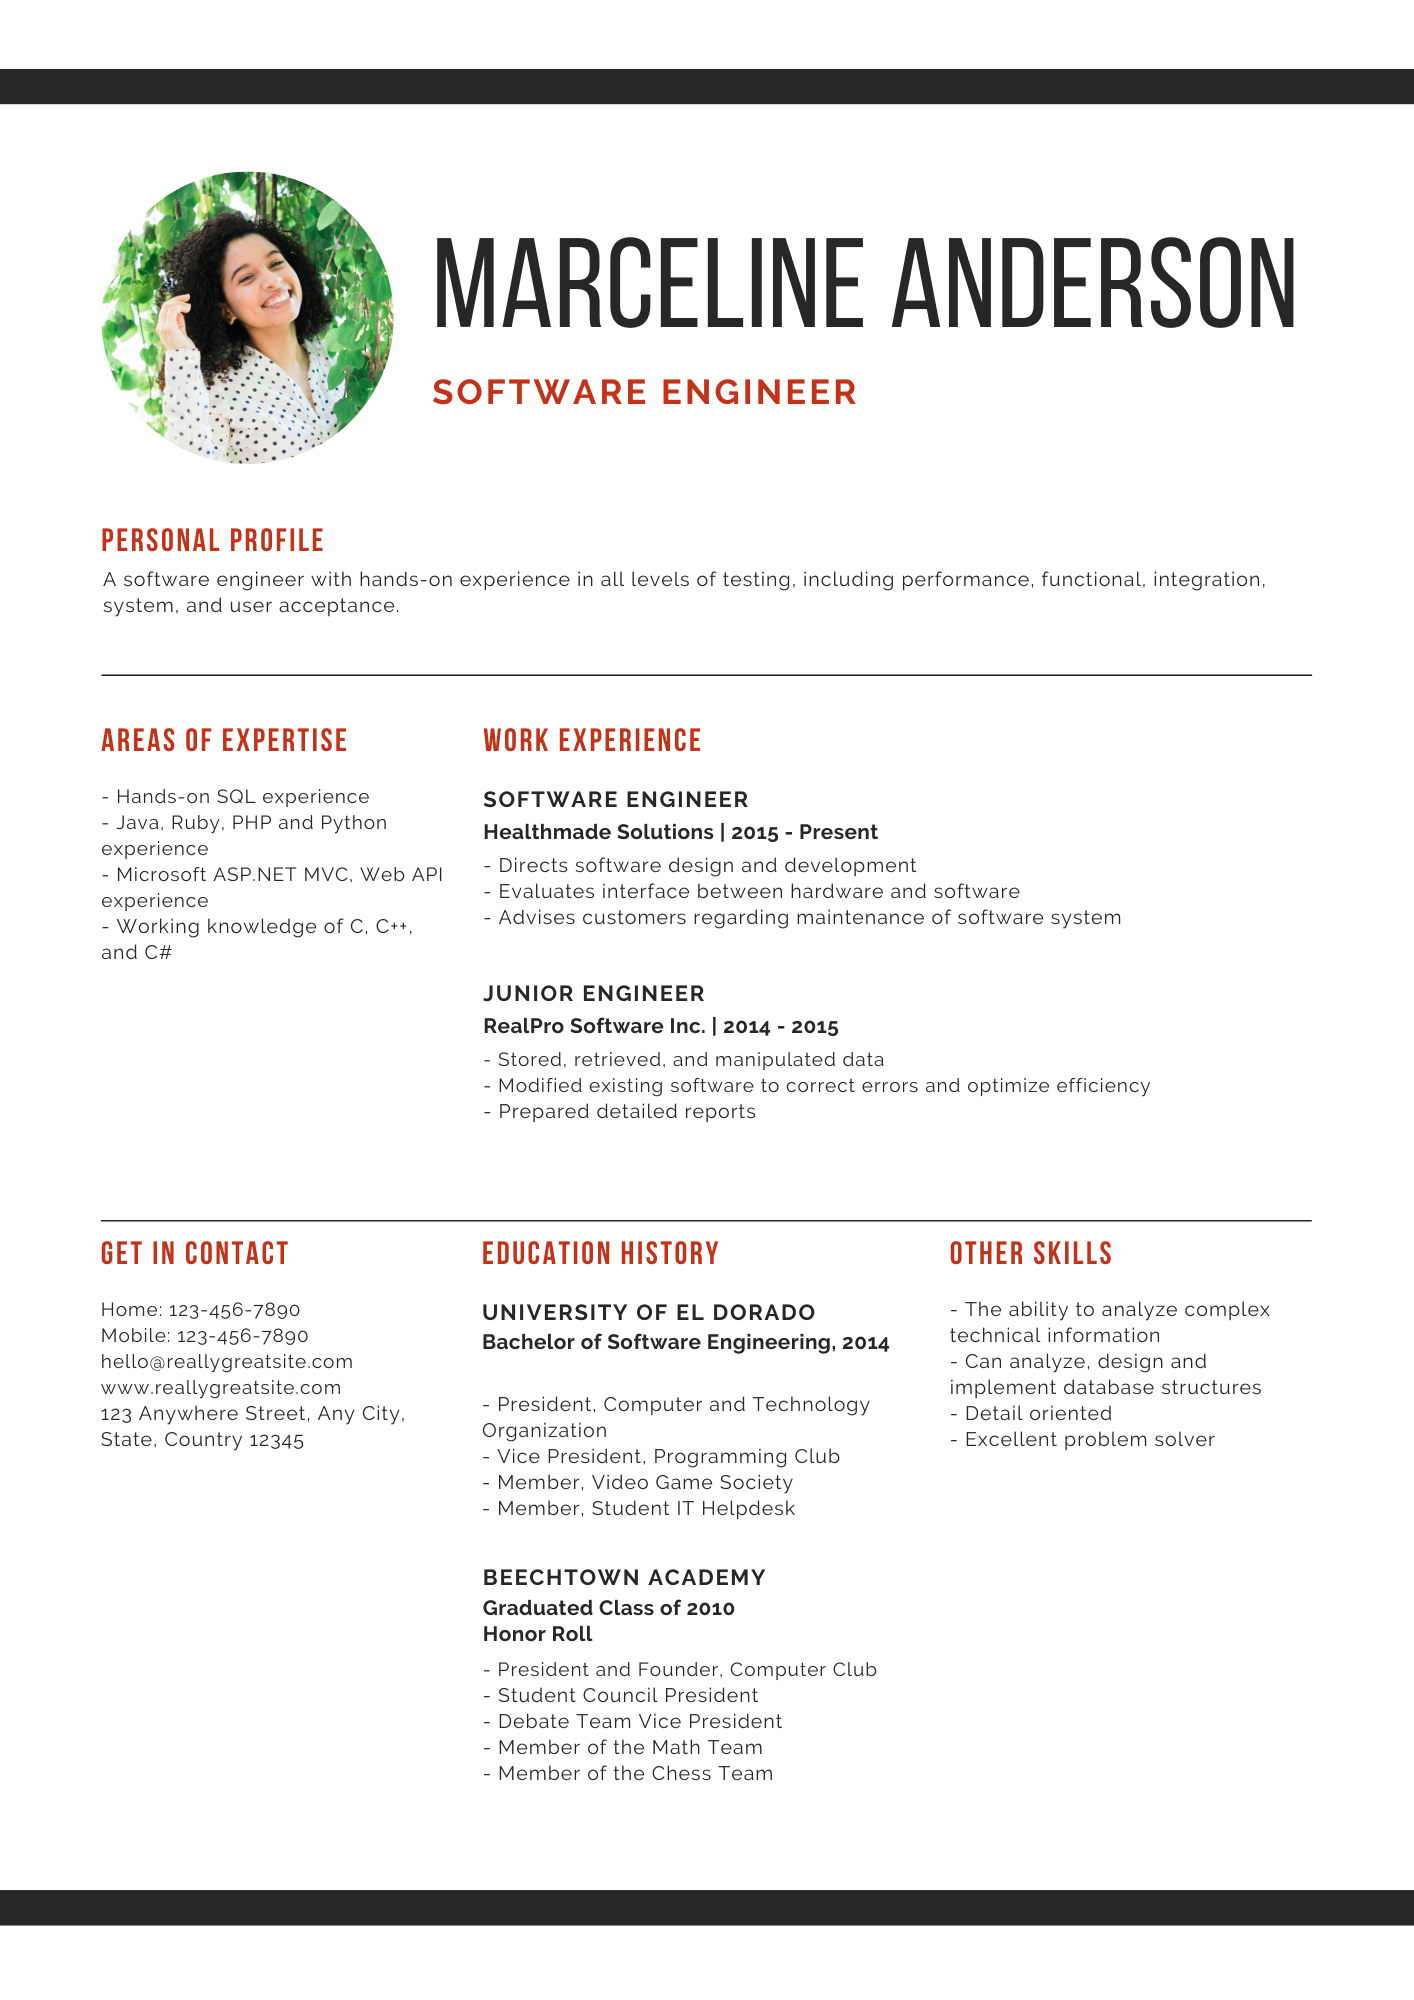 I will rewrite your resume to look professional